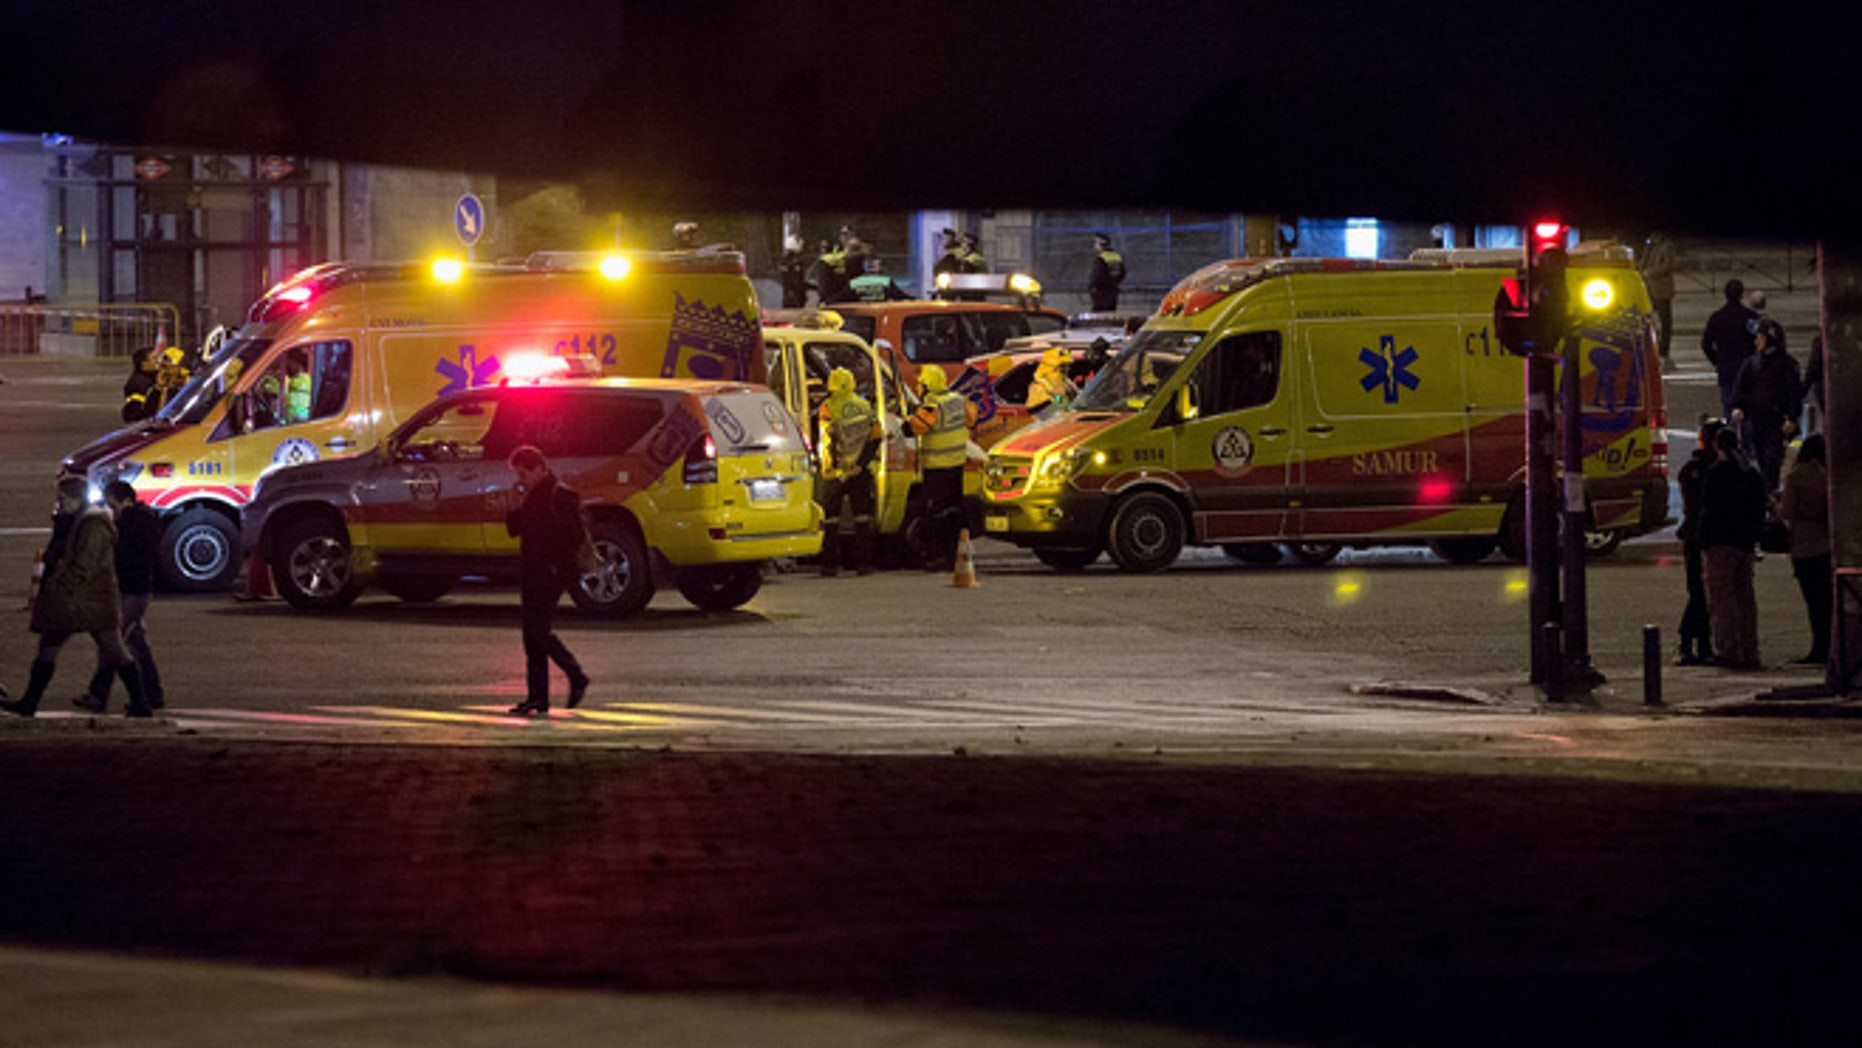 MADRID, SPAIN - JANUARY 08:  Ambulances prepare to leave the area after a suspicious package which was thought to be a bomb was found not to be dangerous at Nuevos Ministerios Train Station on January 8, 2015 in Madrid, Spain. Twelve people were killed yesterday including two police officers, as two gunmen open fire at the offices of the French satirical publication Charlie Hebdo. French Police have made seven arrests in connection with the attack while further violence today included a gunman killing a policewoman in the southern suburb of Montrouge. (Photo by Pablo Blazquez Dominguez/Getty Images)